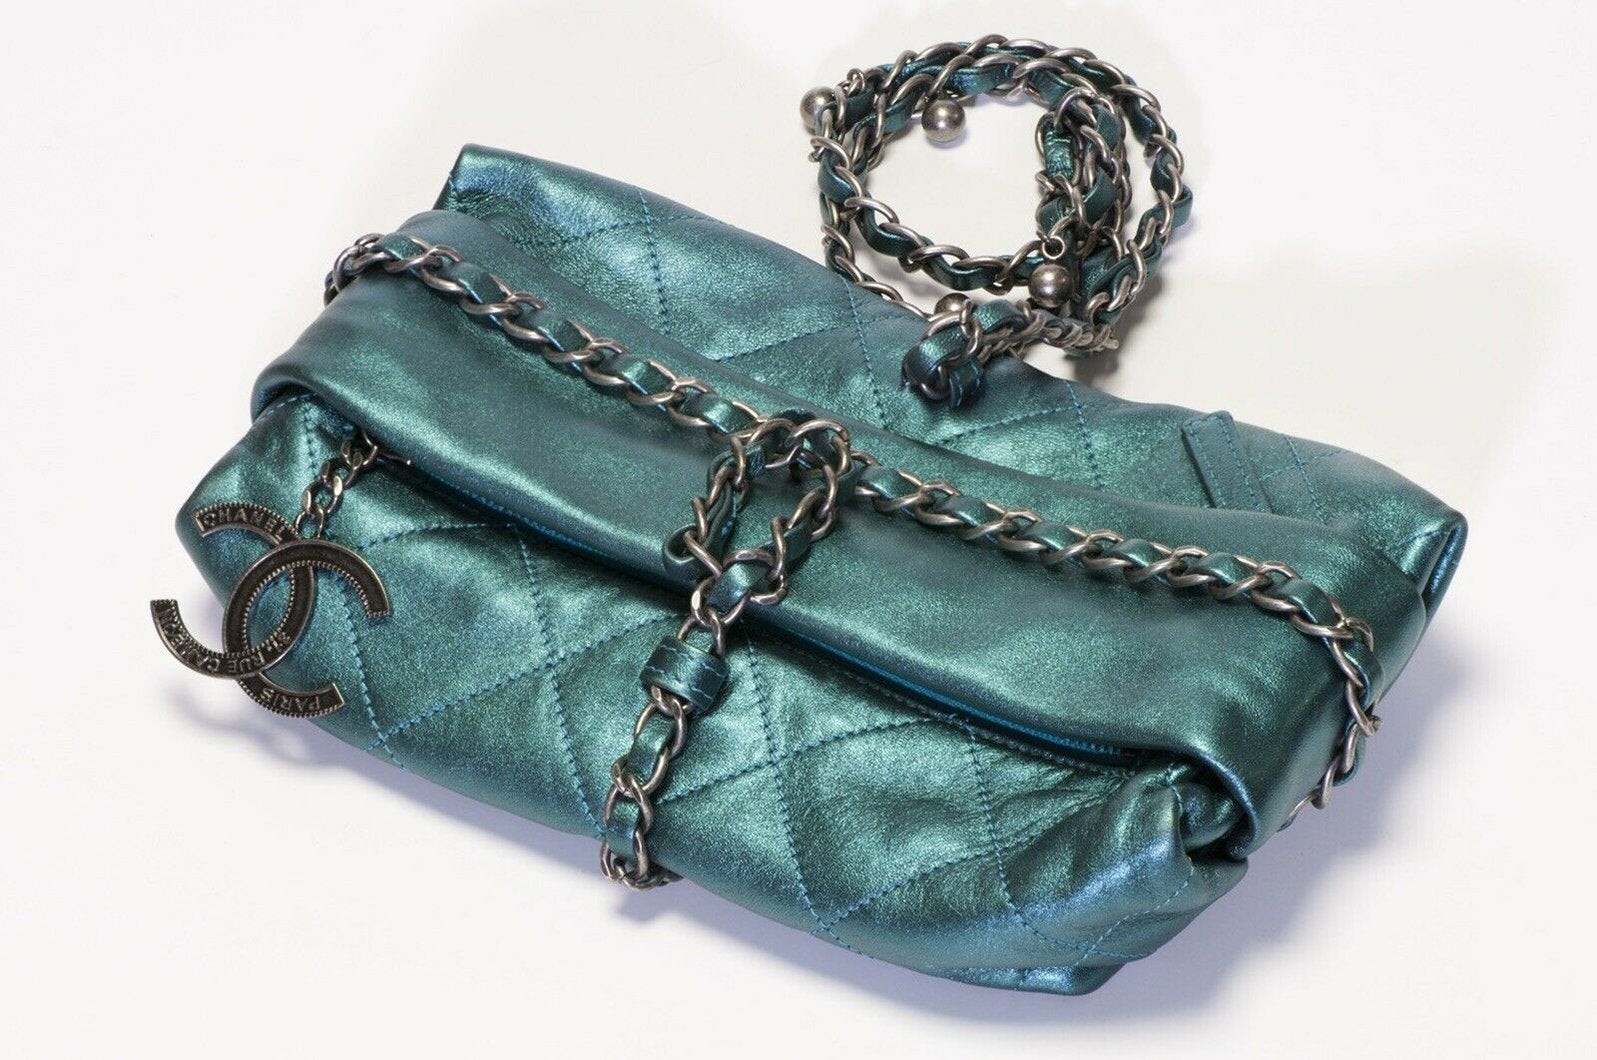 chanel-2012-turquoise-green-quilted-leather-cc-wrap-chain-bag